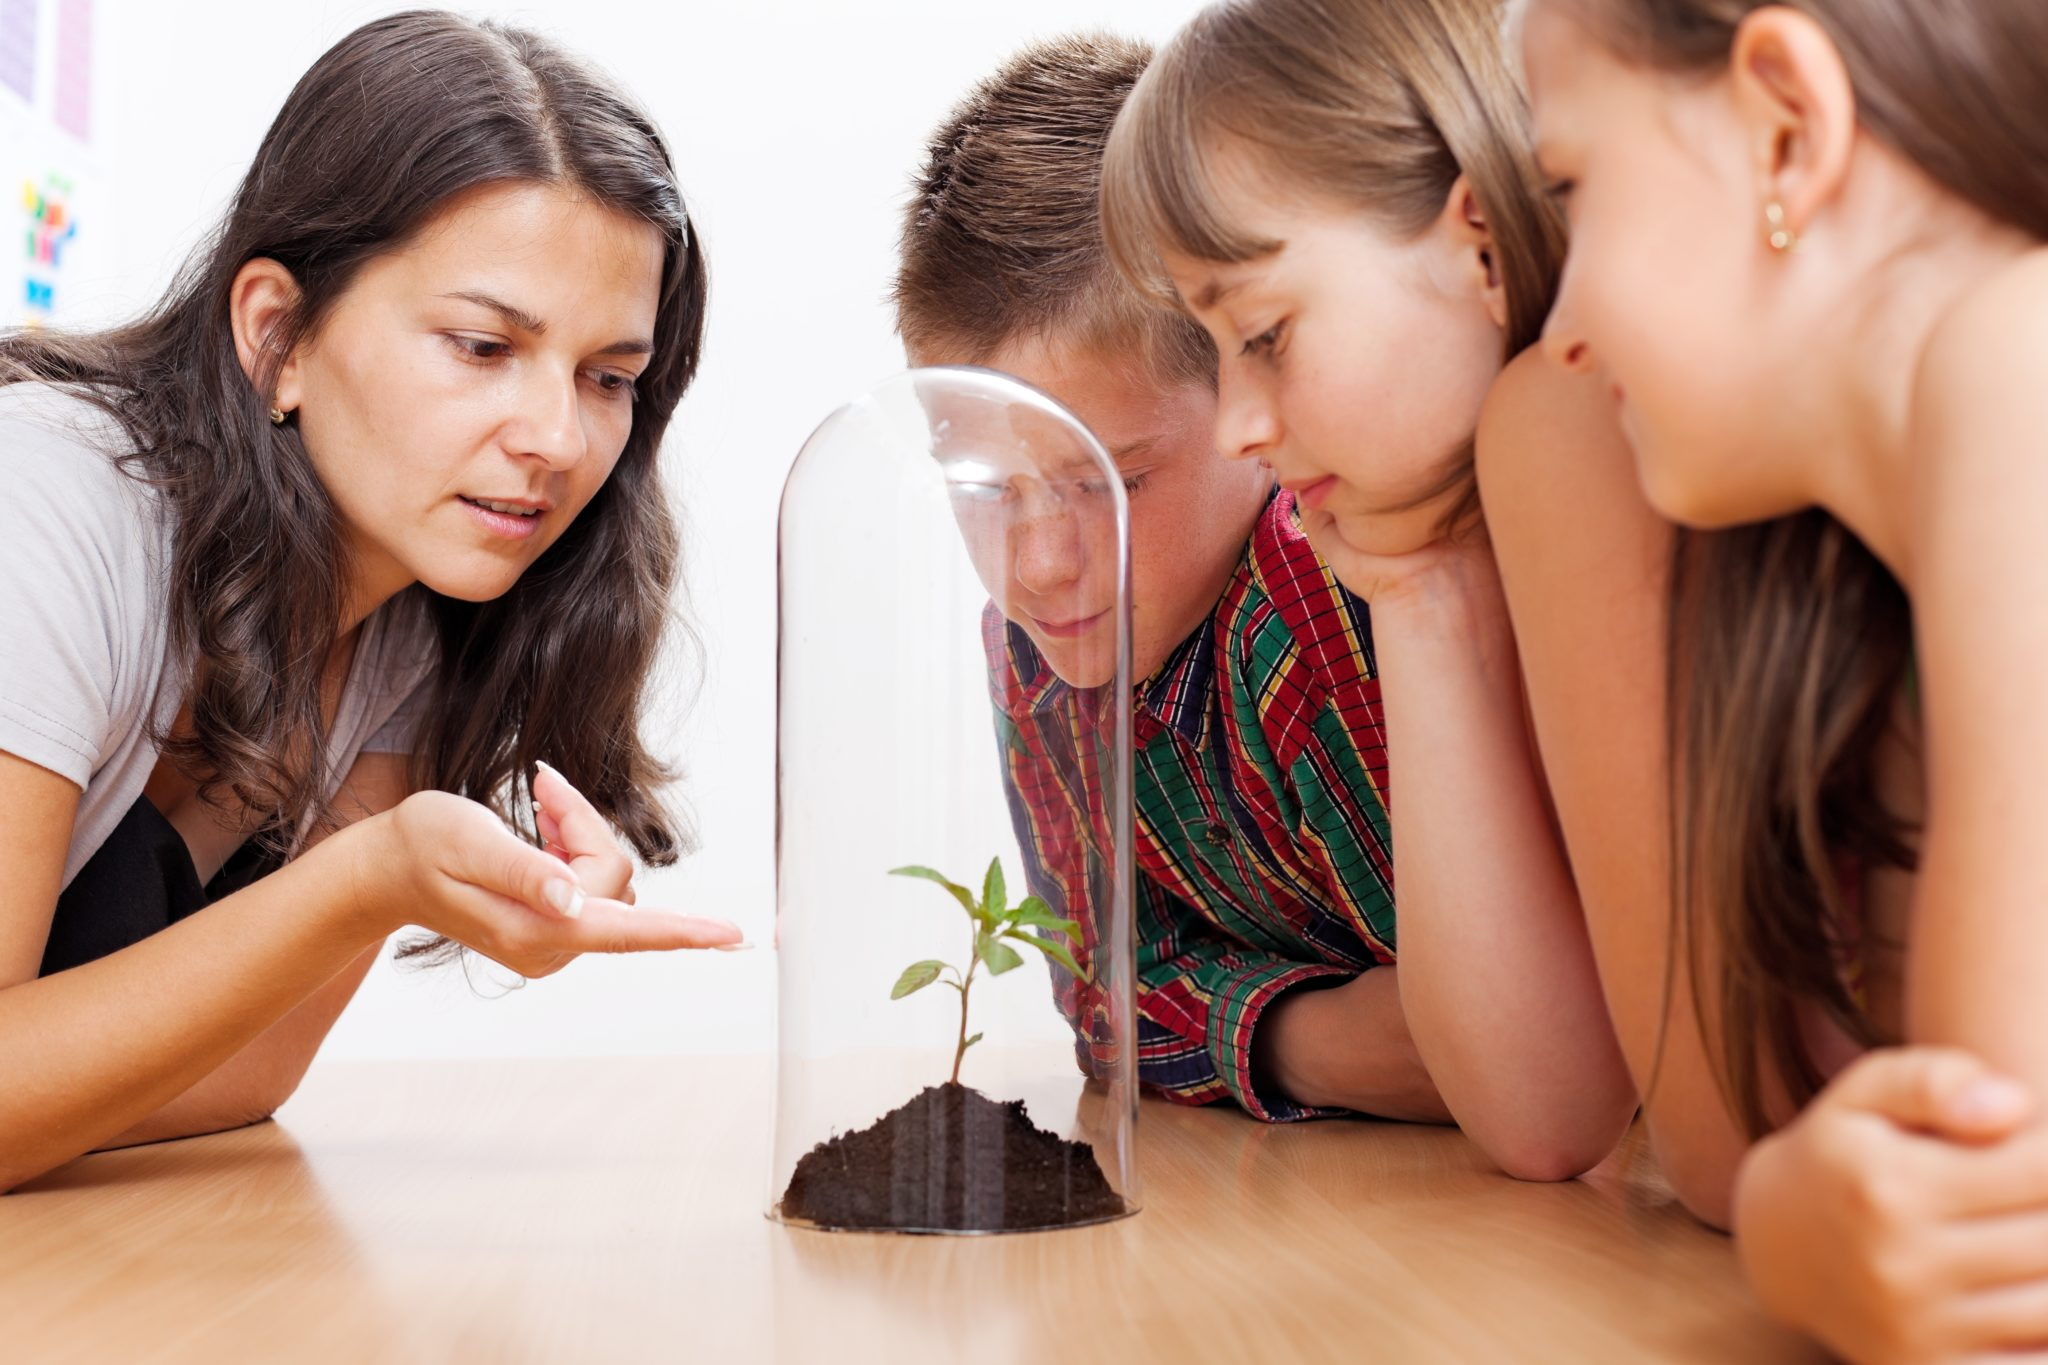 women teaching three children about soil, plant, and horticulture with the use of a small pile of soil with a tomato plant growing out of it